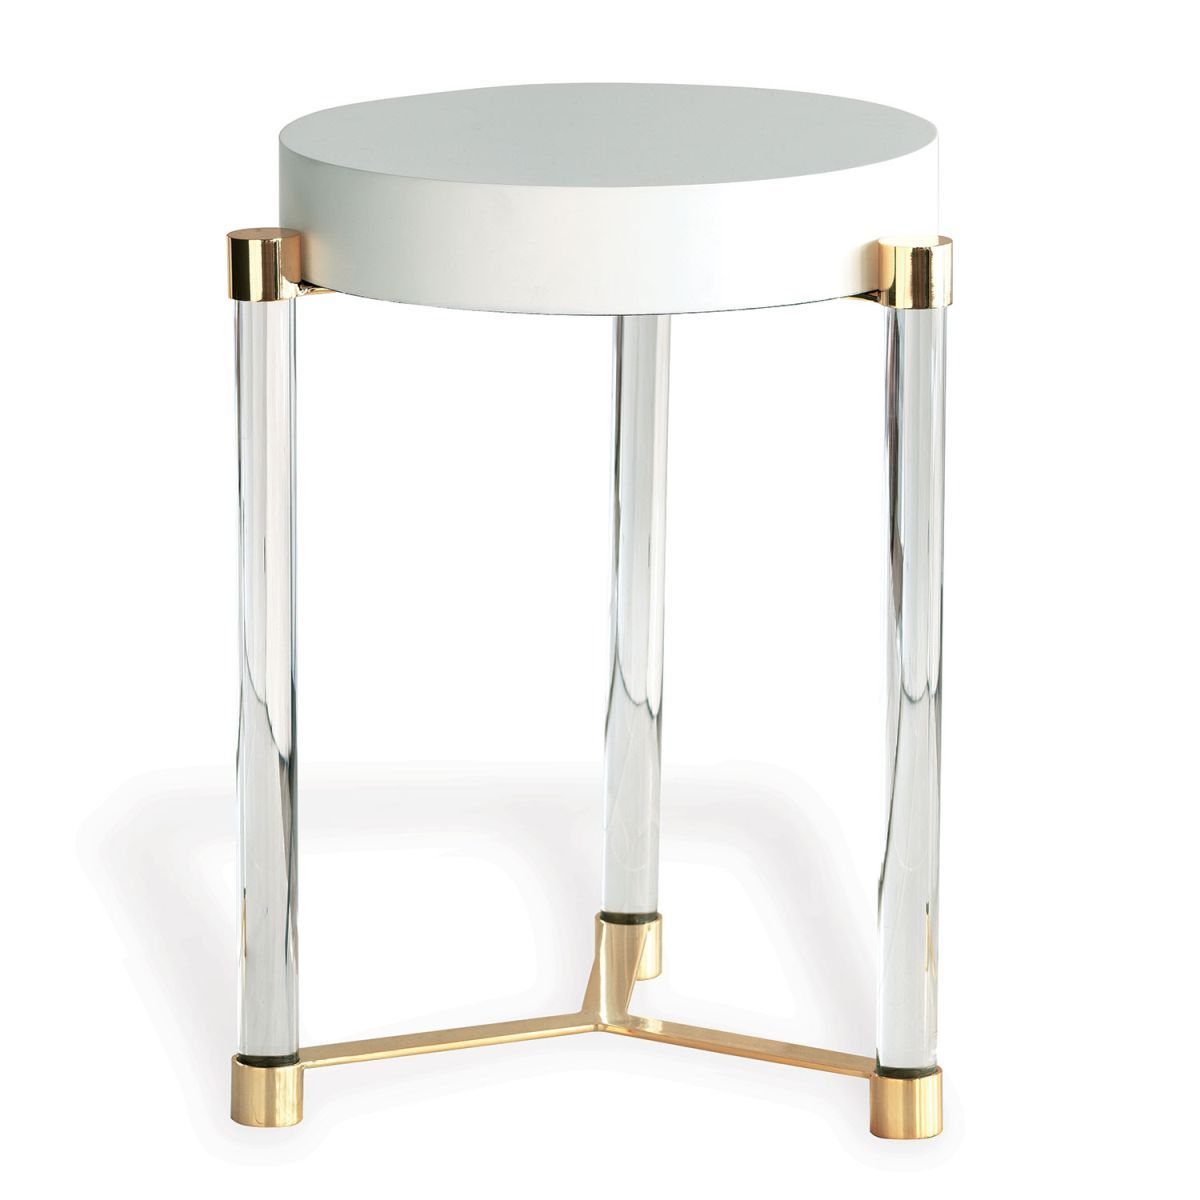 port afds maxwell white gold accent table small wooden kitchen wood and side world market end inch round carpet cover strip outdoor daybeds clearance imitation furniture tiffany